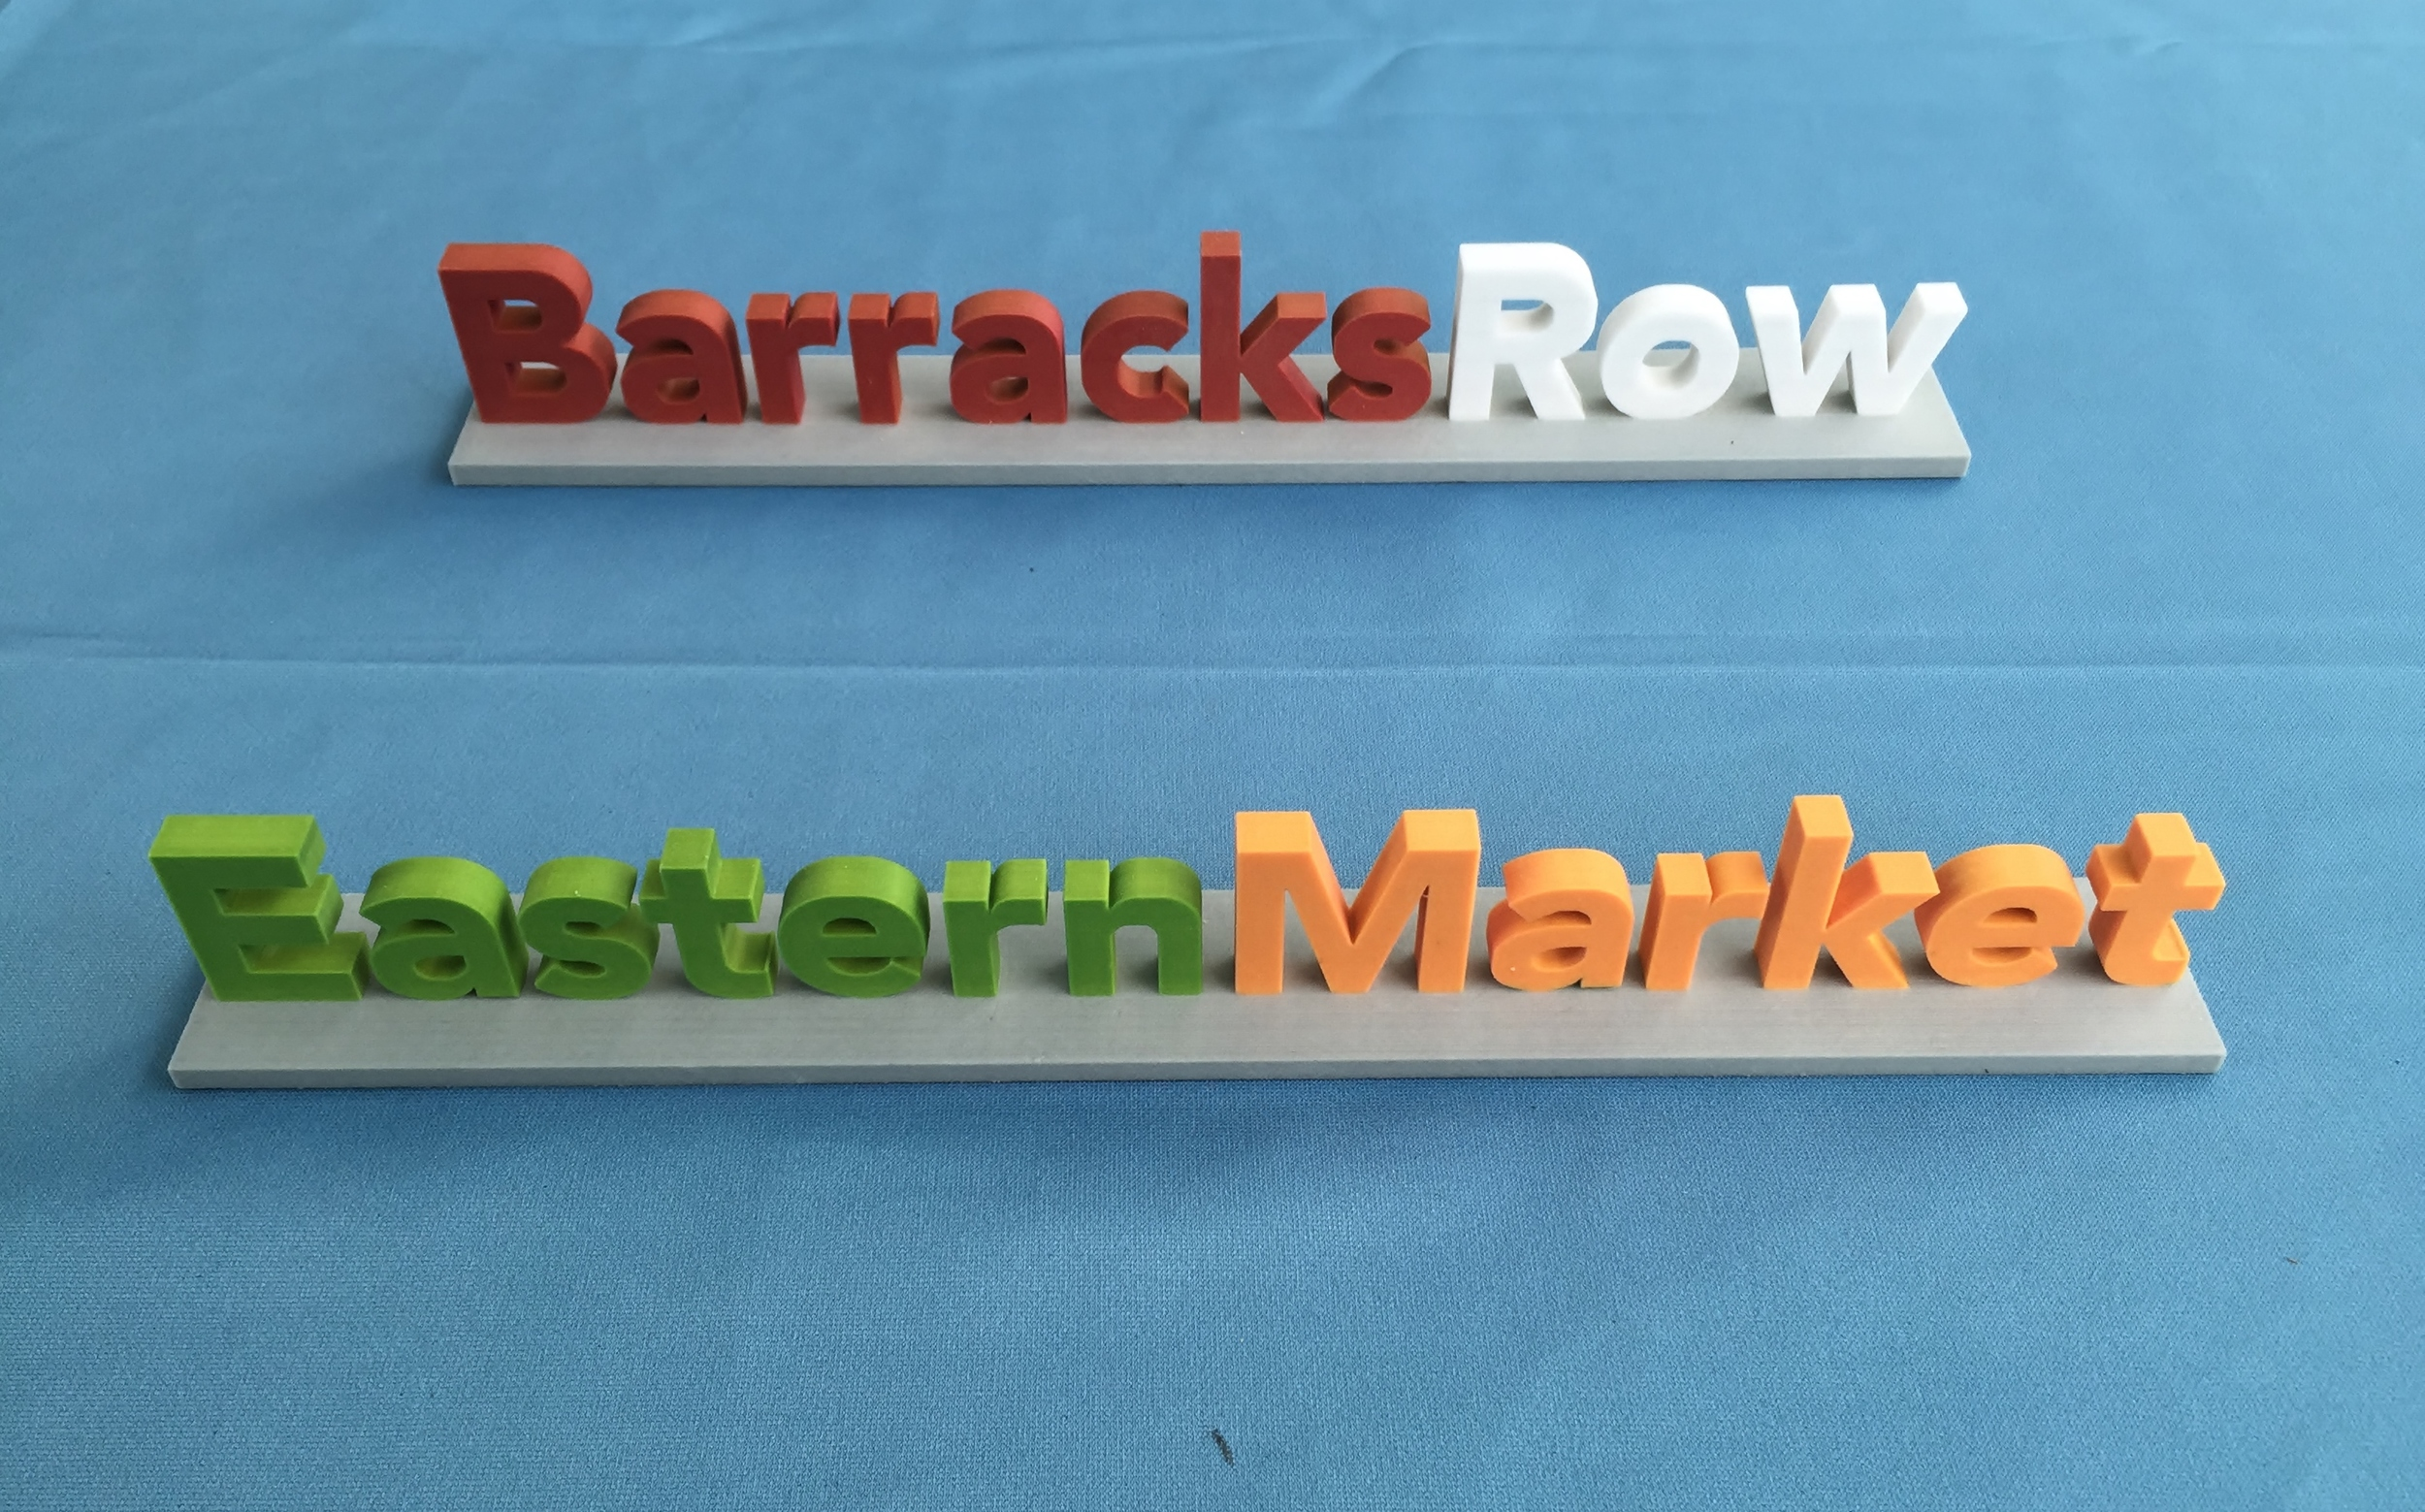 Barracks Row and Eastern Market Letters 3 D Printed in Color 10 6 15.JPG